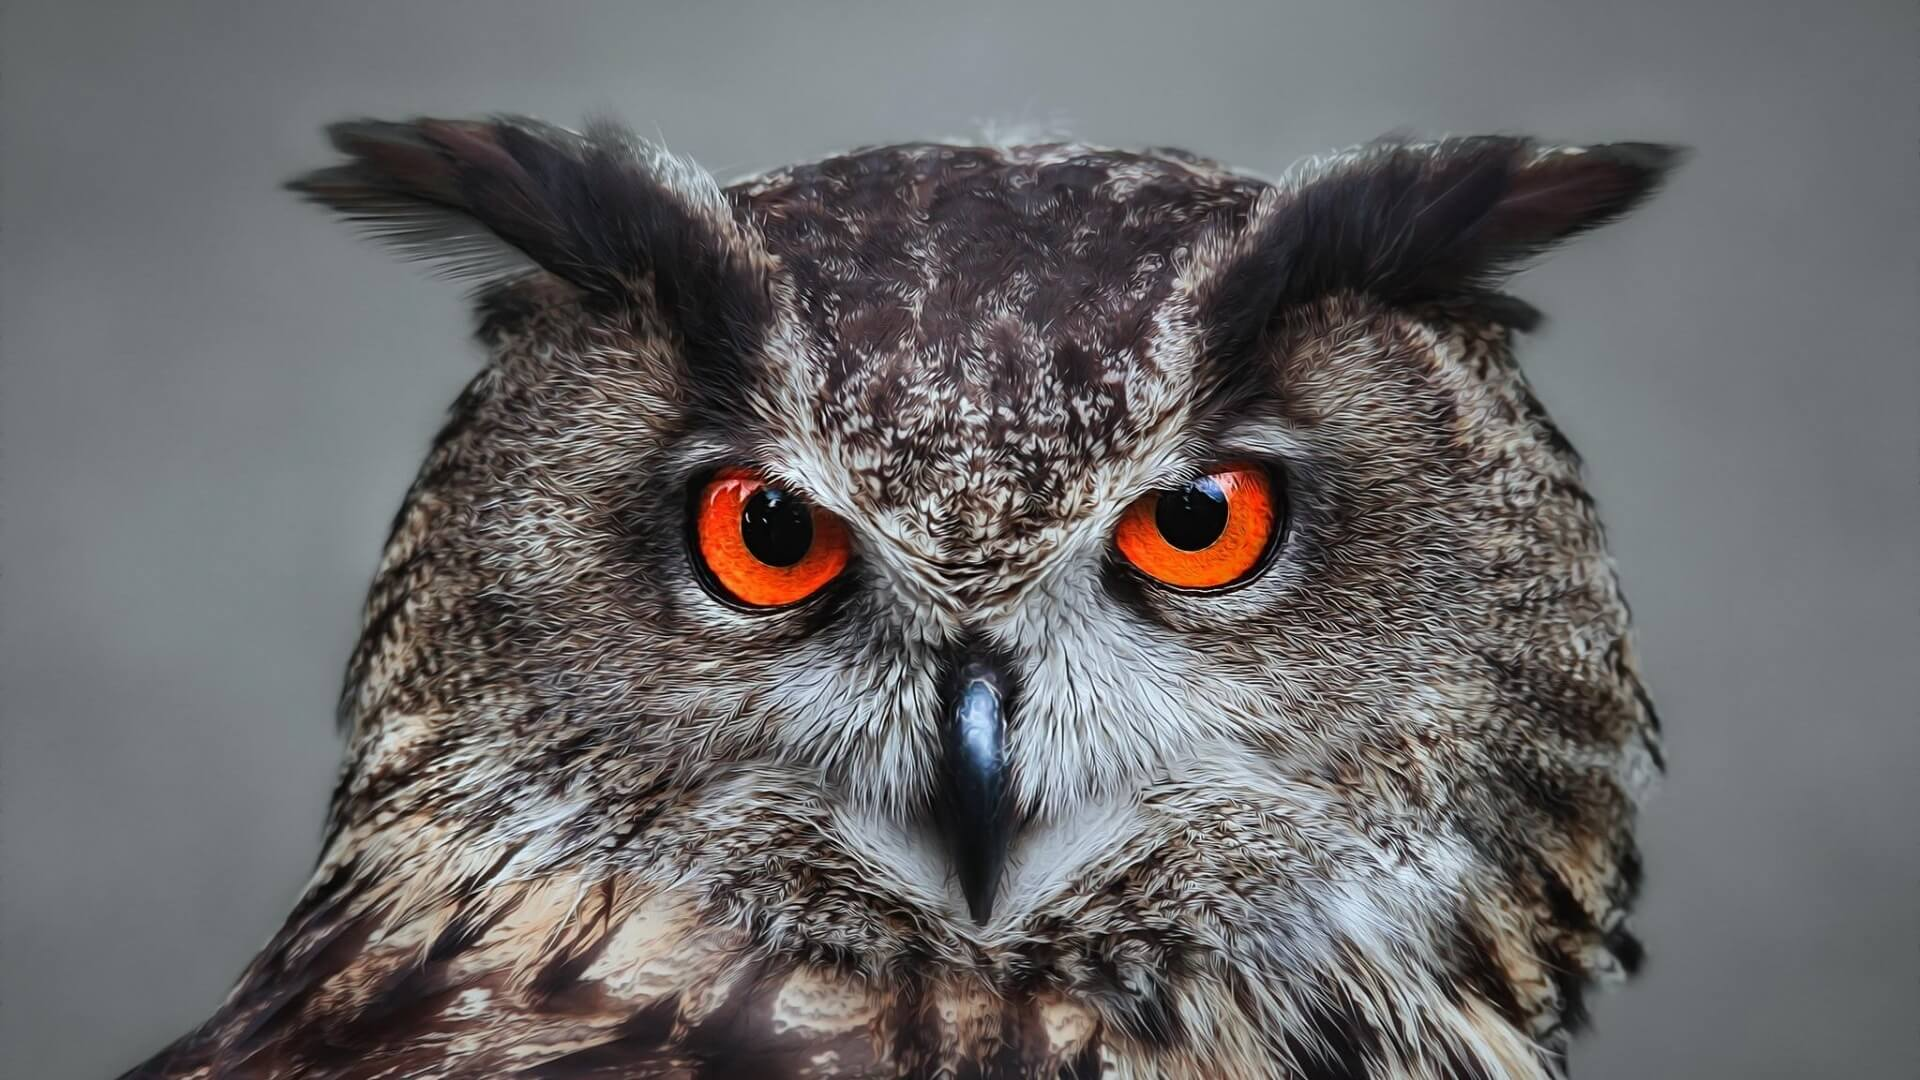 owl wallpaper | hd wallpaper background